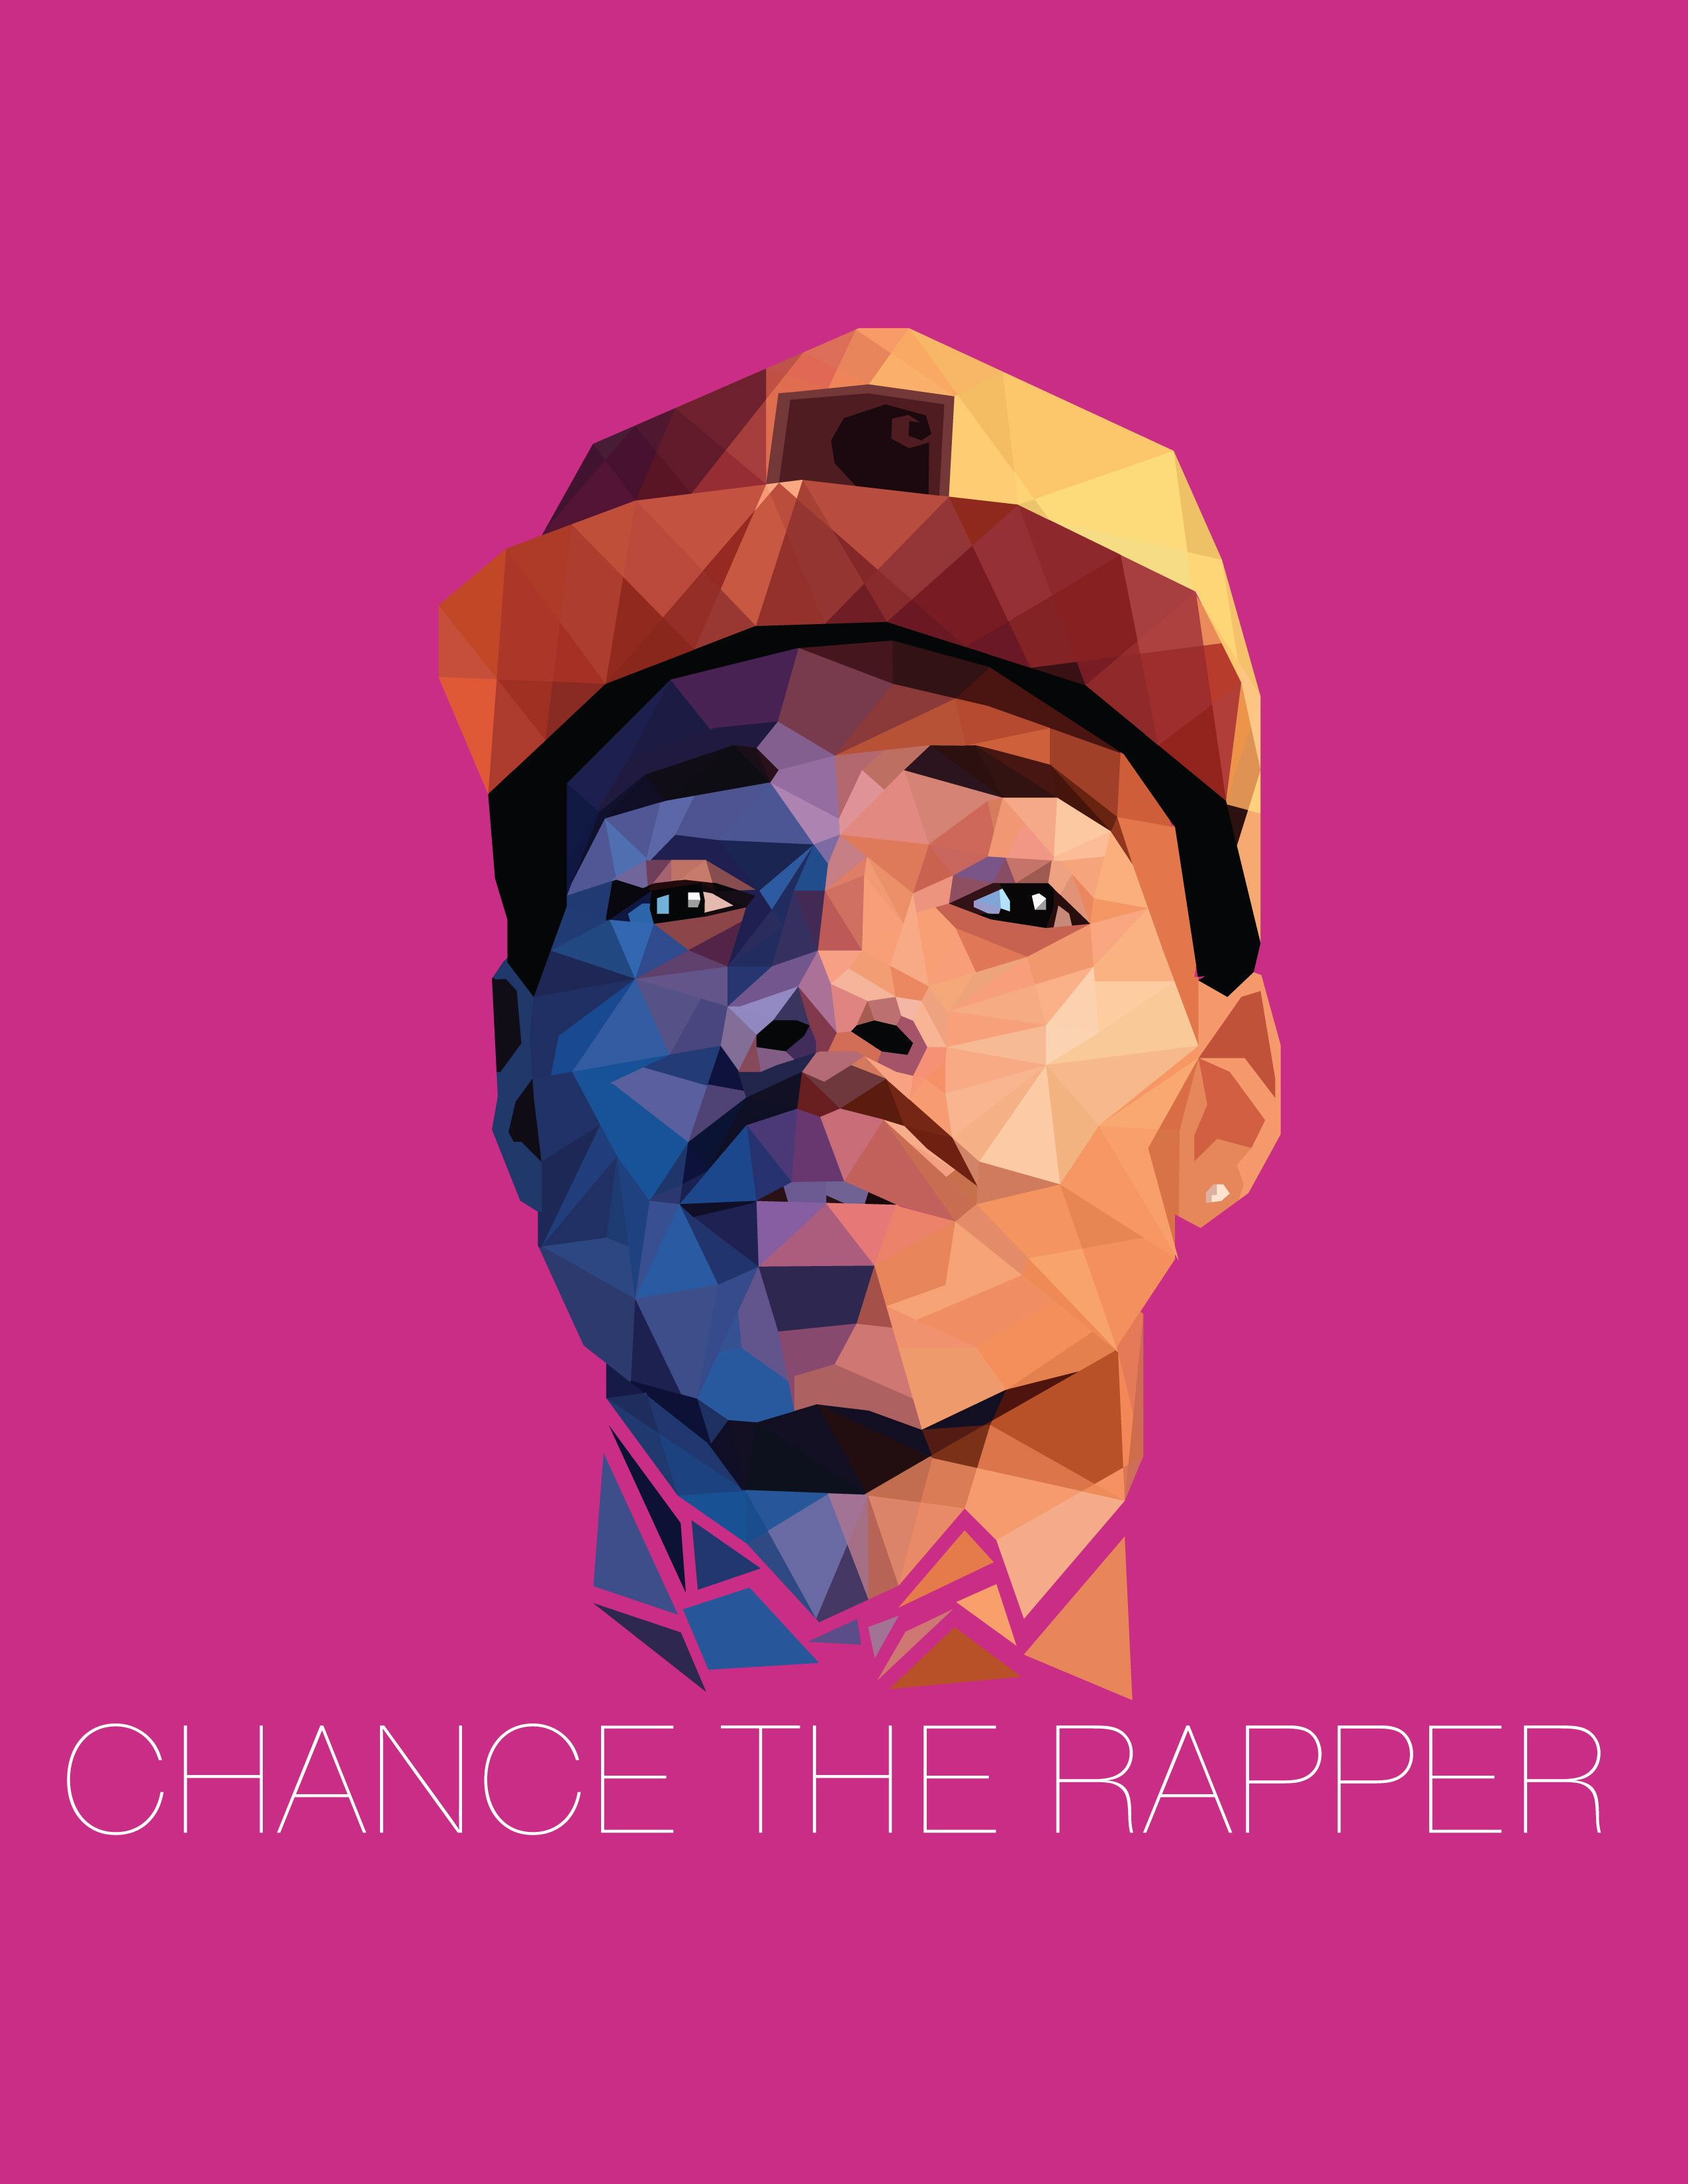 Chance The Rapper Chance The Rapper Wallpaper Chance The Rapper Rapper